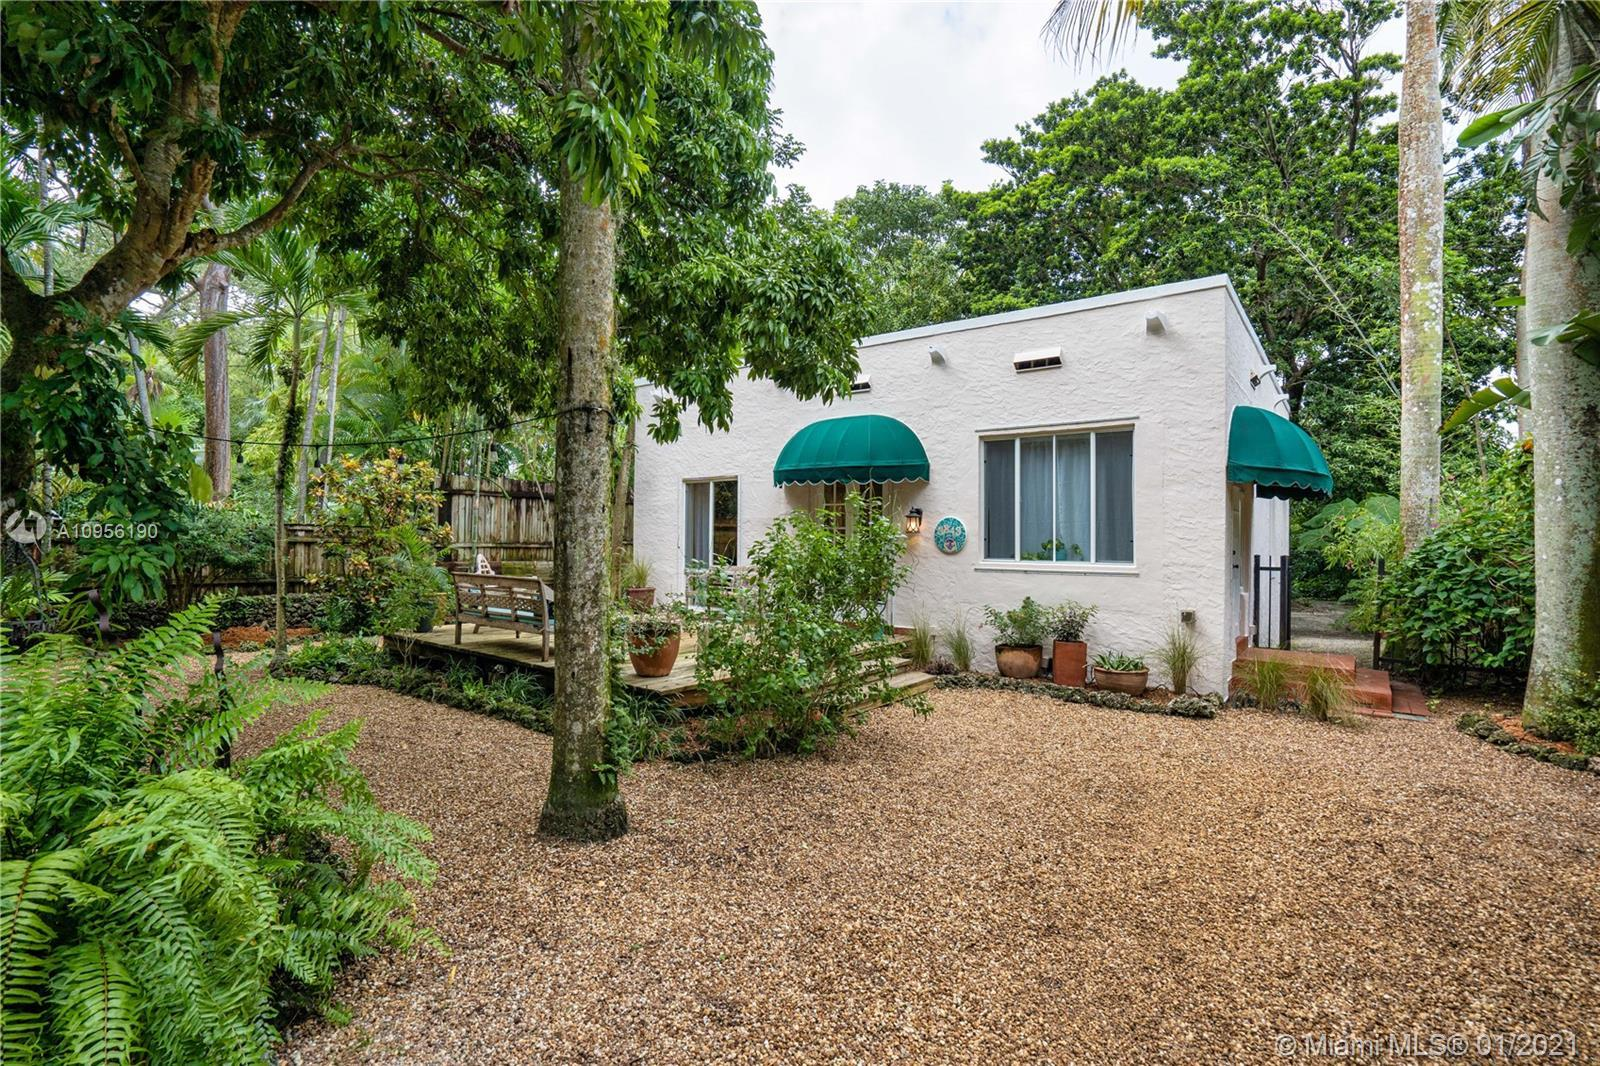 Lovely Spanish-style home in coveted South Coconut Grove. 2 bedroom/2 full bath on extra large lot l